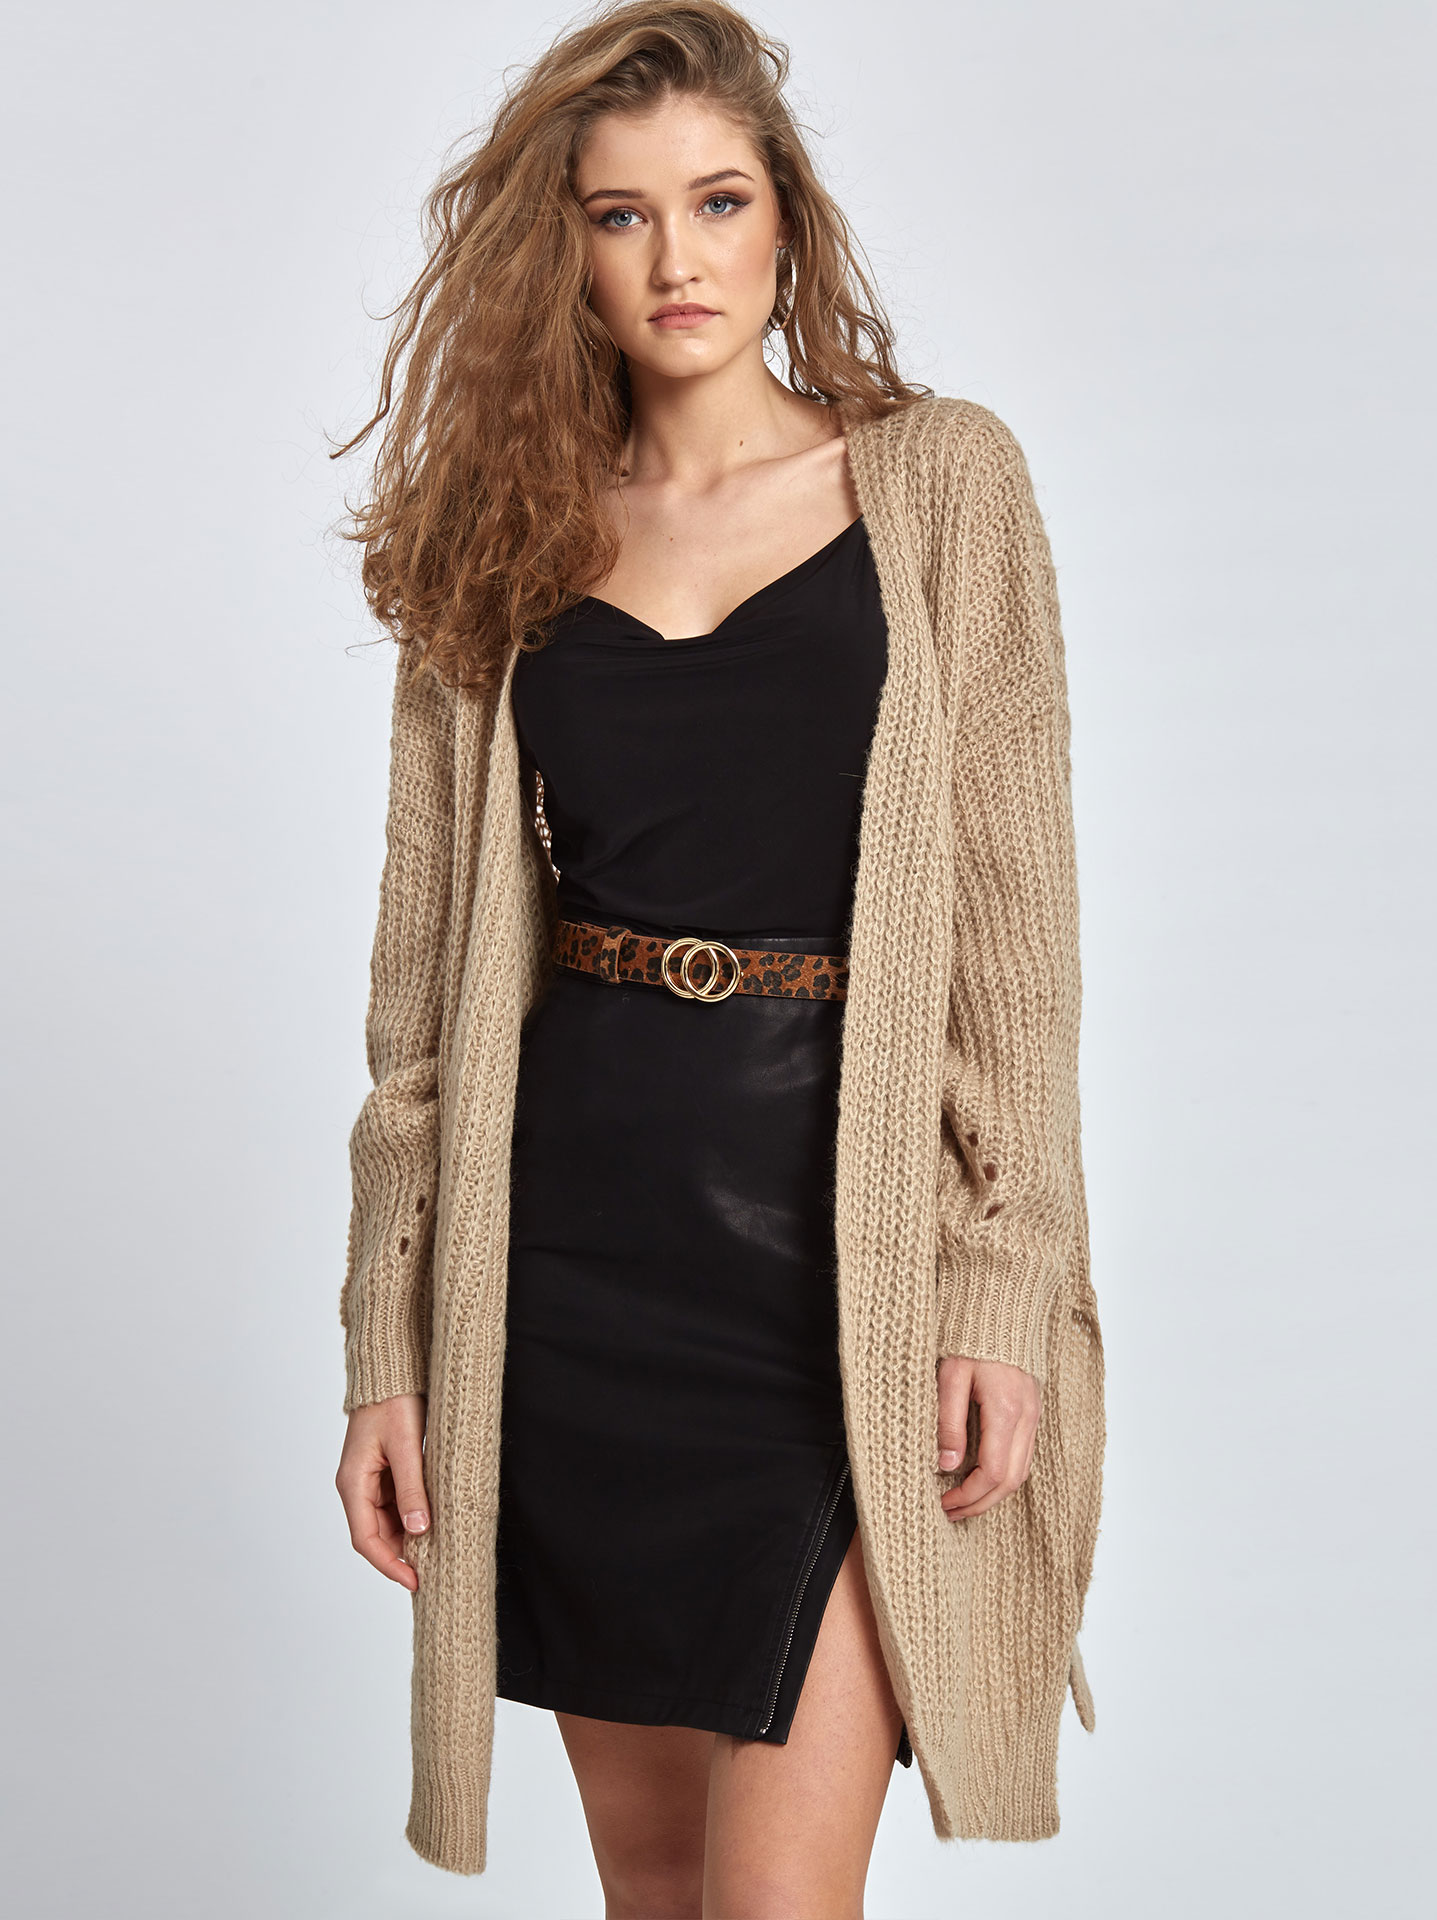 caacbbd8bcfe Long knitted cardigan in beige